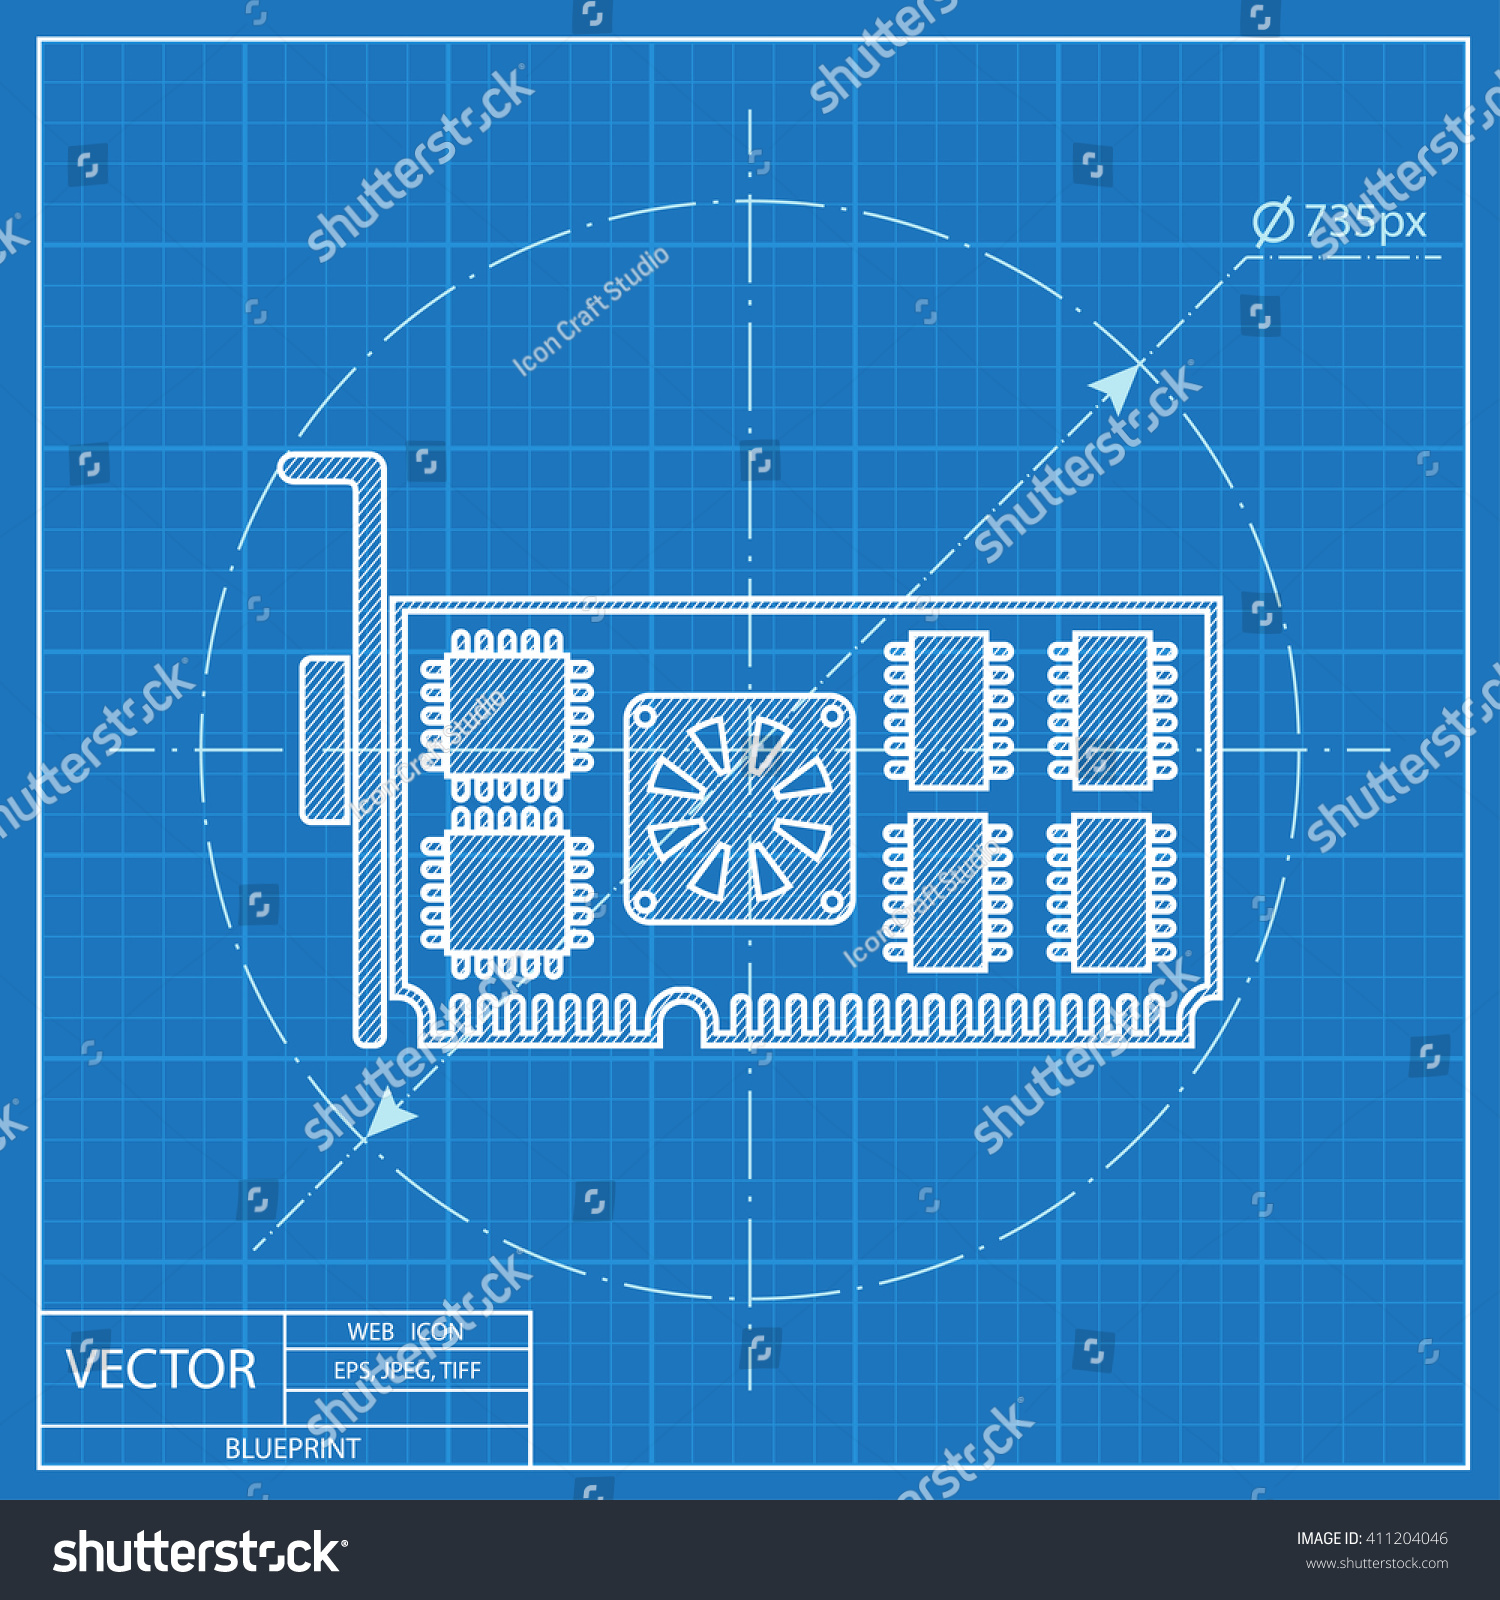 Blueprint Icon Computer Video Card Desktop Stock Vector Royalty Cpu Parts Diagram Of Pictogram Technology Illustration